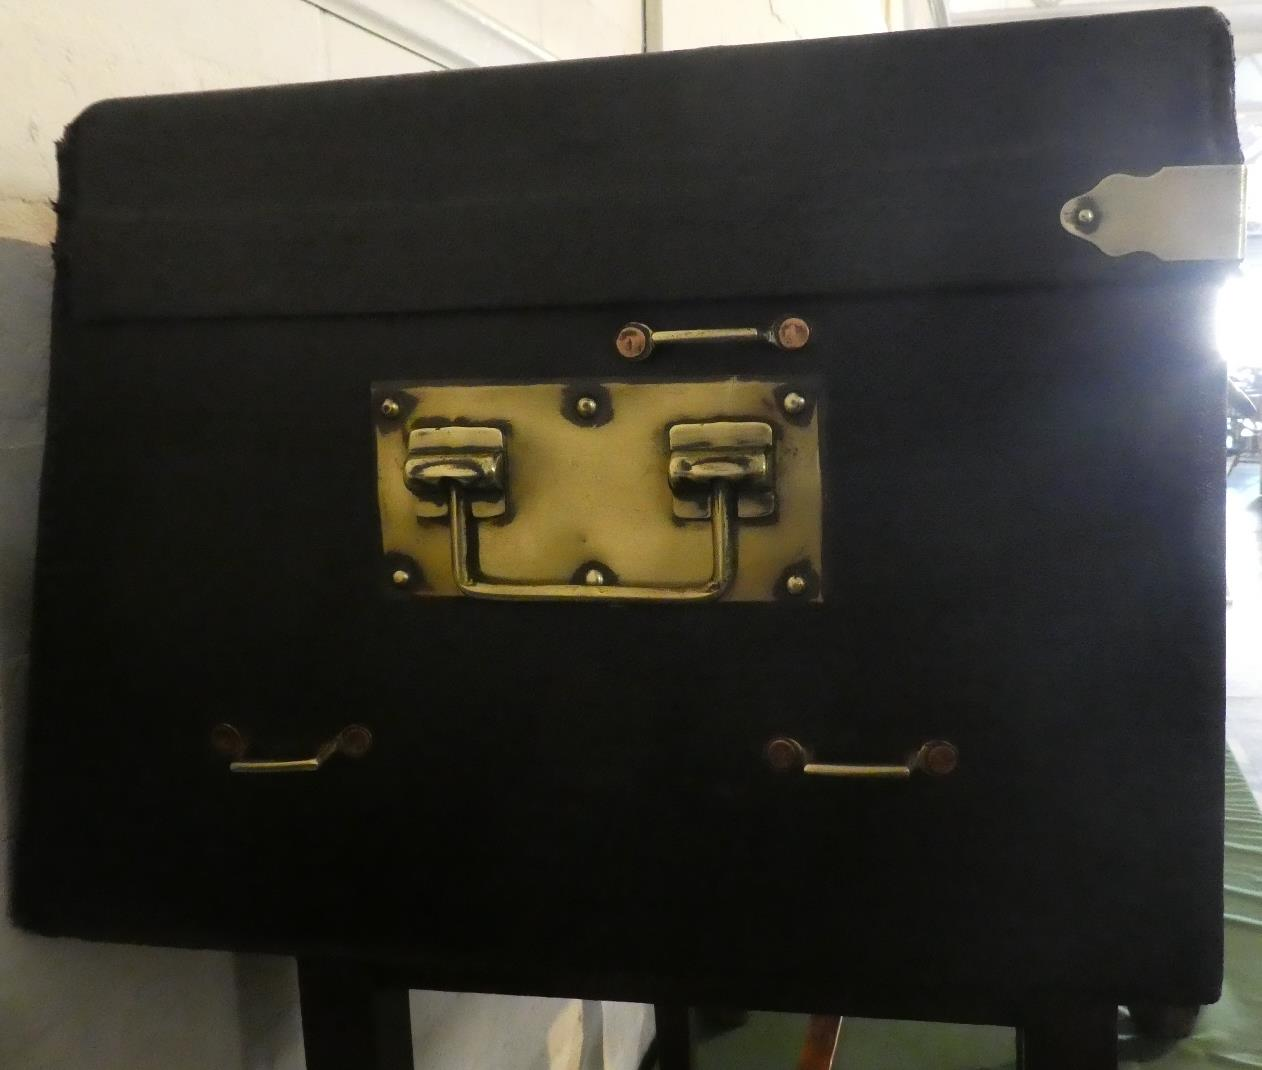 Lot 58 - An Early 20th Century Motoring Trunk with a Black Canvas Covered Body and with a Slanted Shaped Back